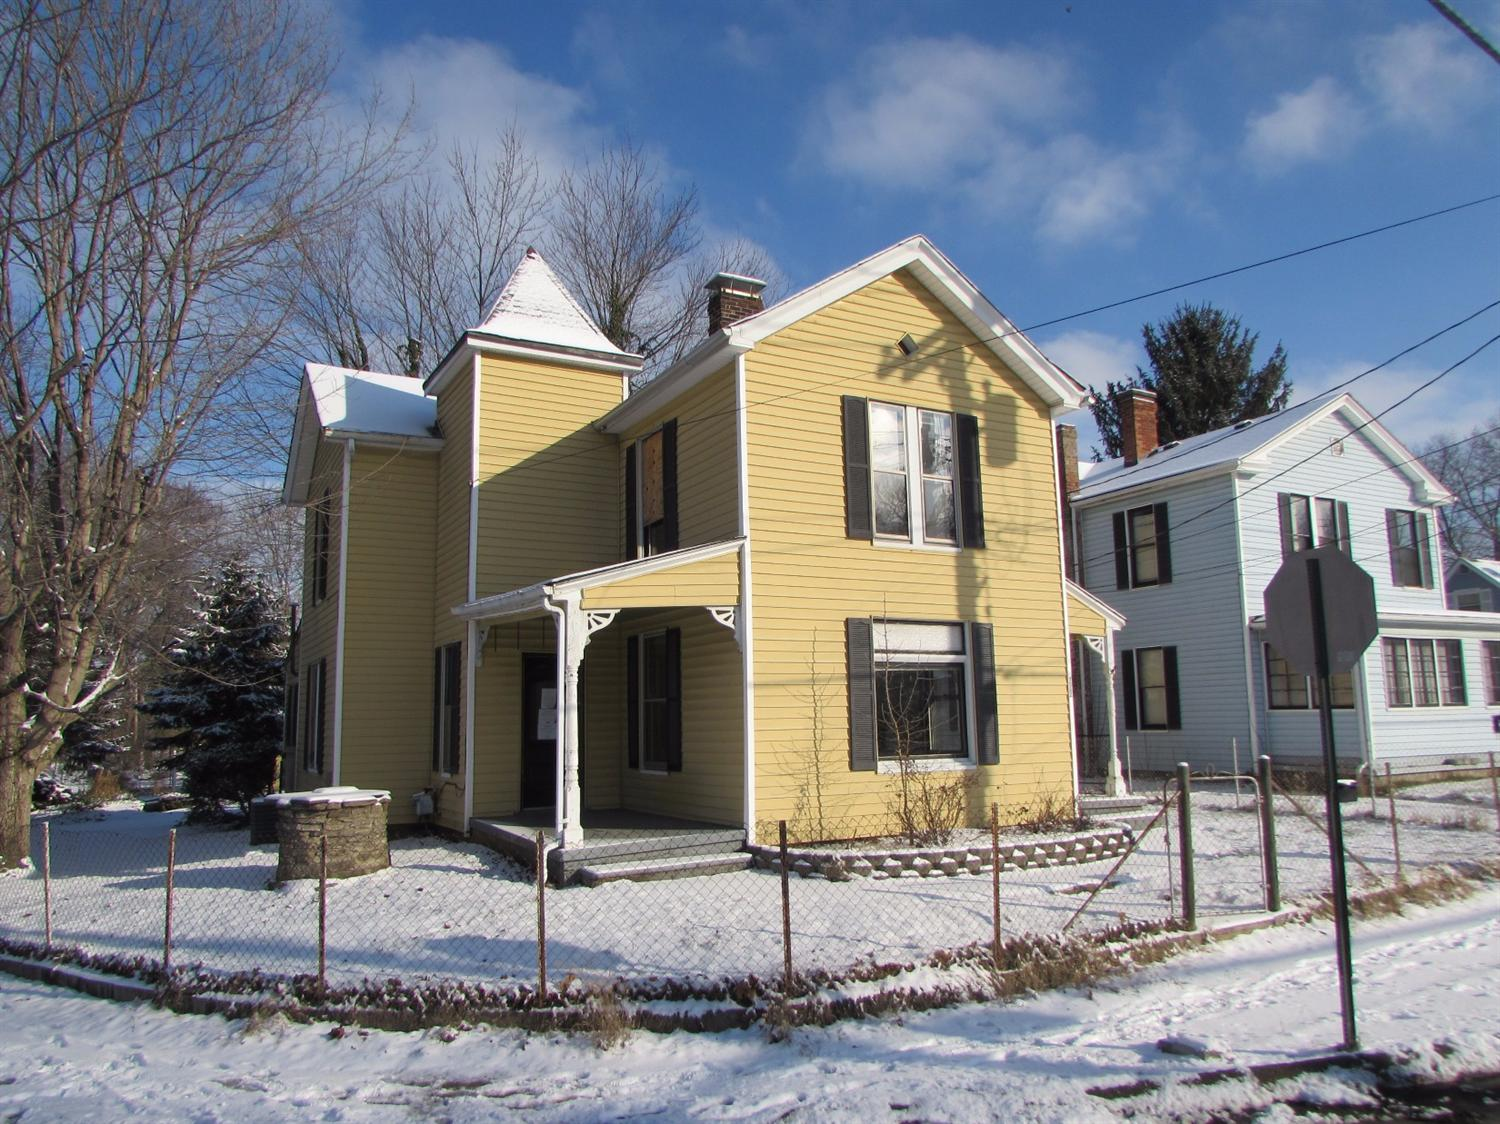 222 Mt Nebo Rd Cleves Oh 45002 Listing Details Mls